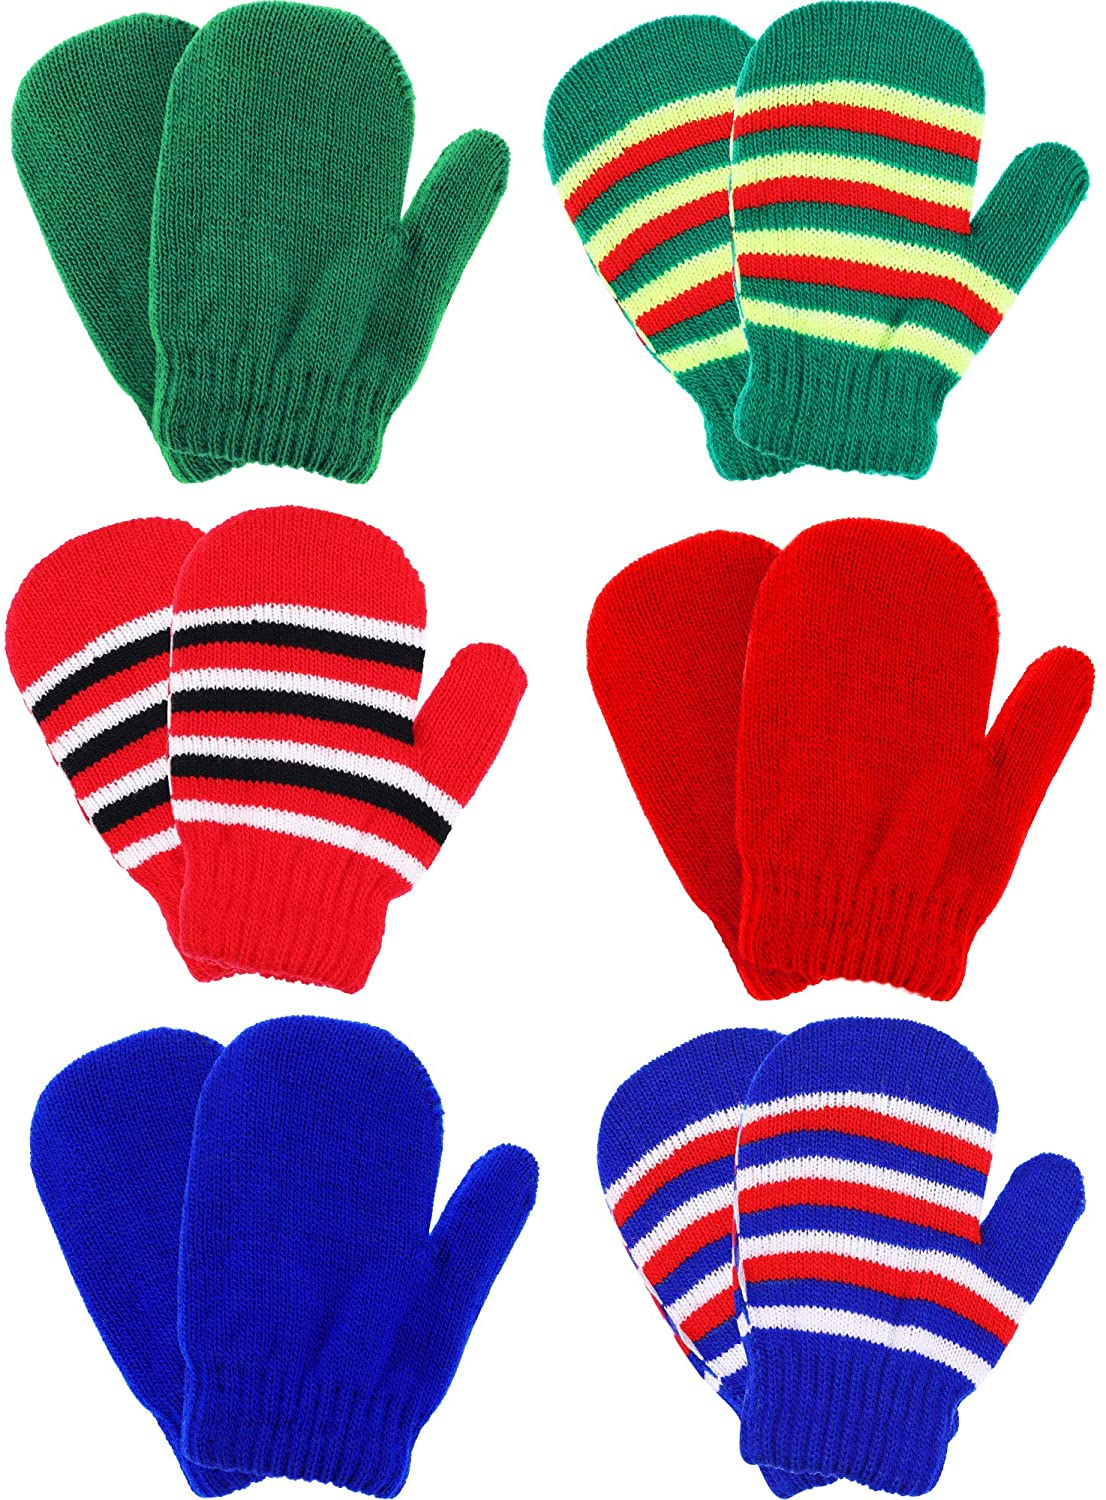 Boao 6 Pairs Stretch Mittens Winter Warm Knitted Gloves for Halloween Party Kids Toddler Supplies (Color 8)